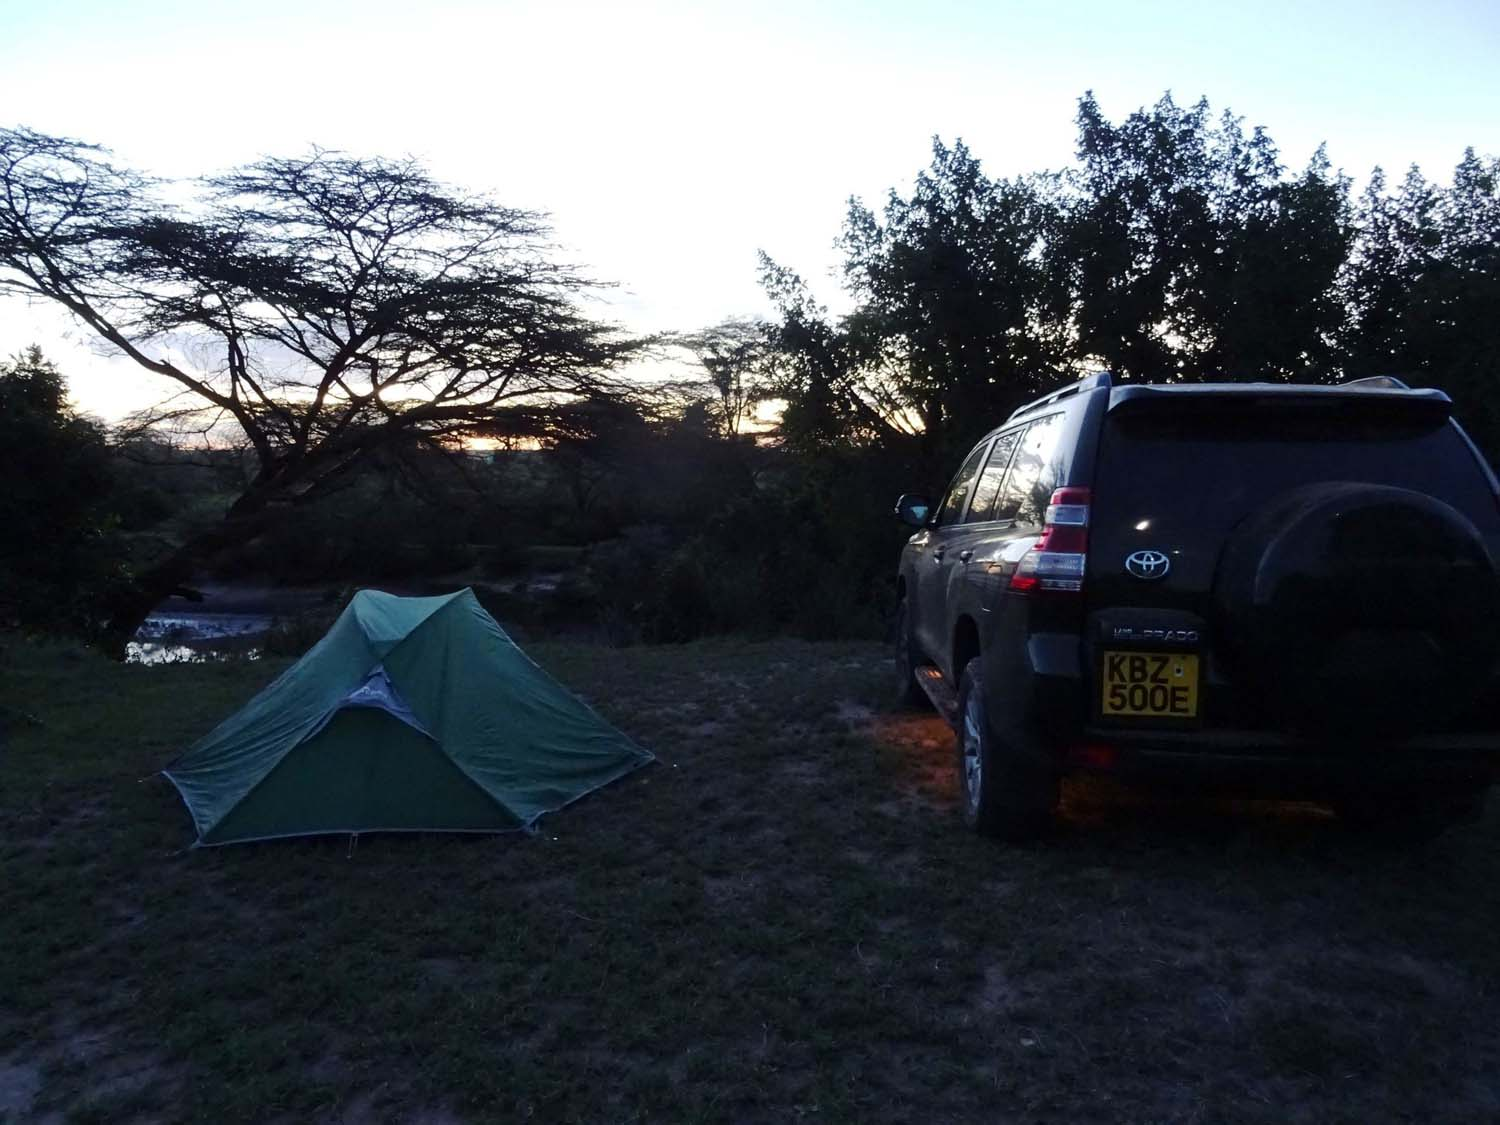 our campsite at Aruba camp just outside the Masai Mara